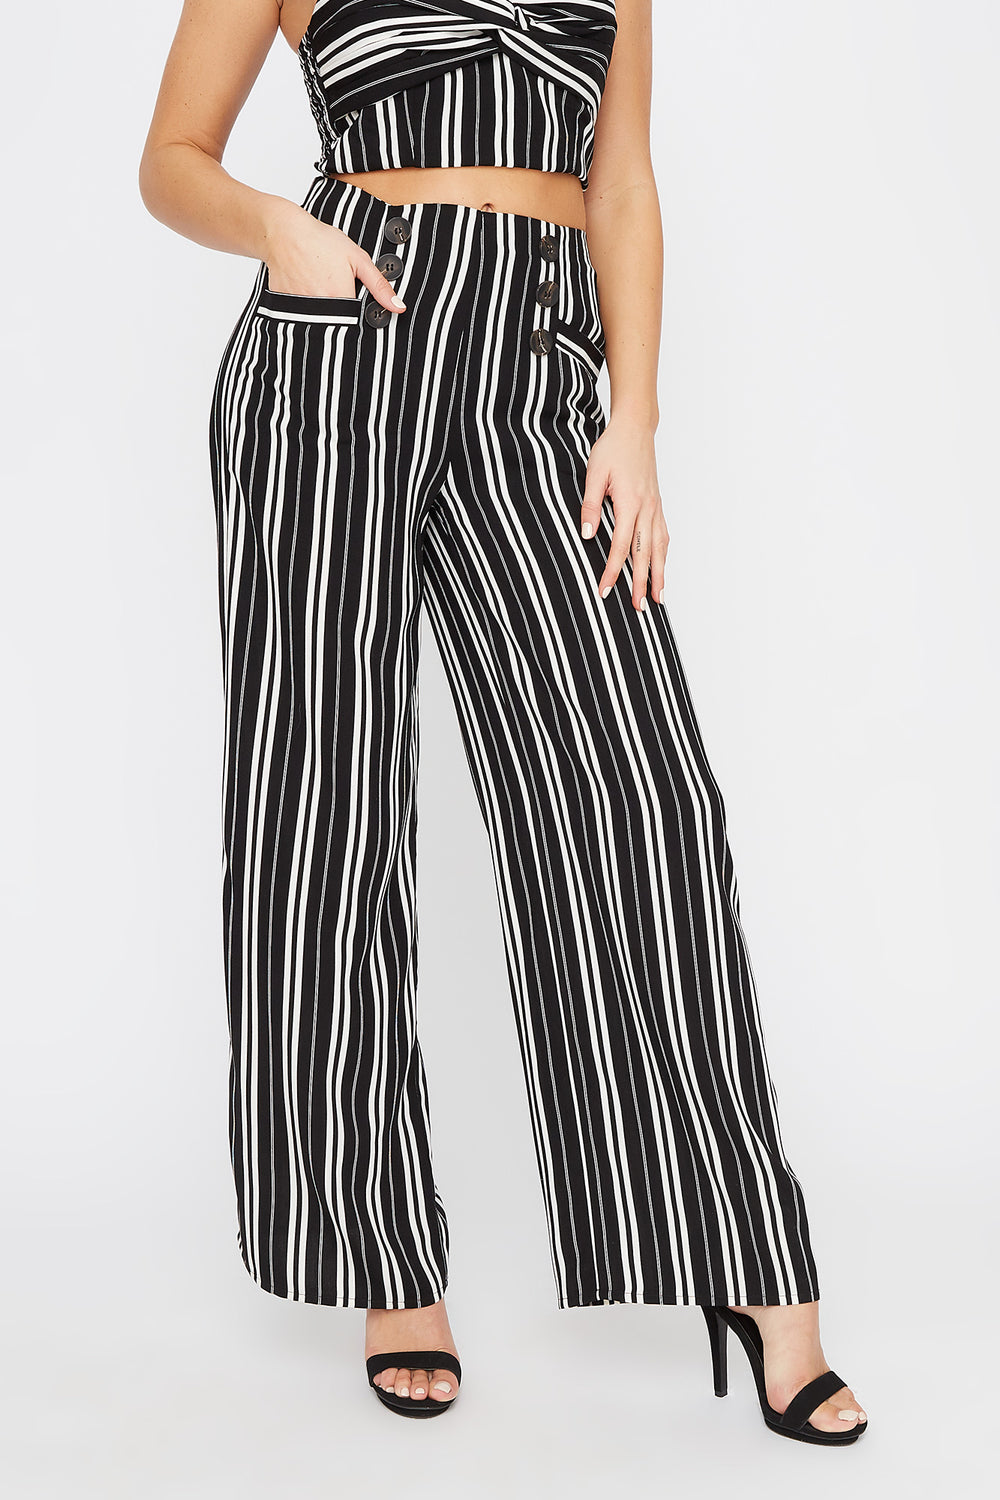 Double Button Wide Leg Pant Black